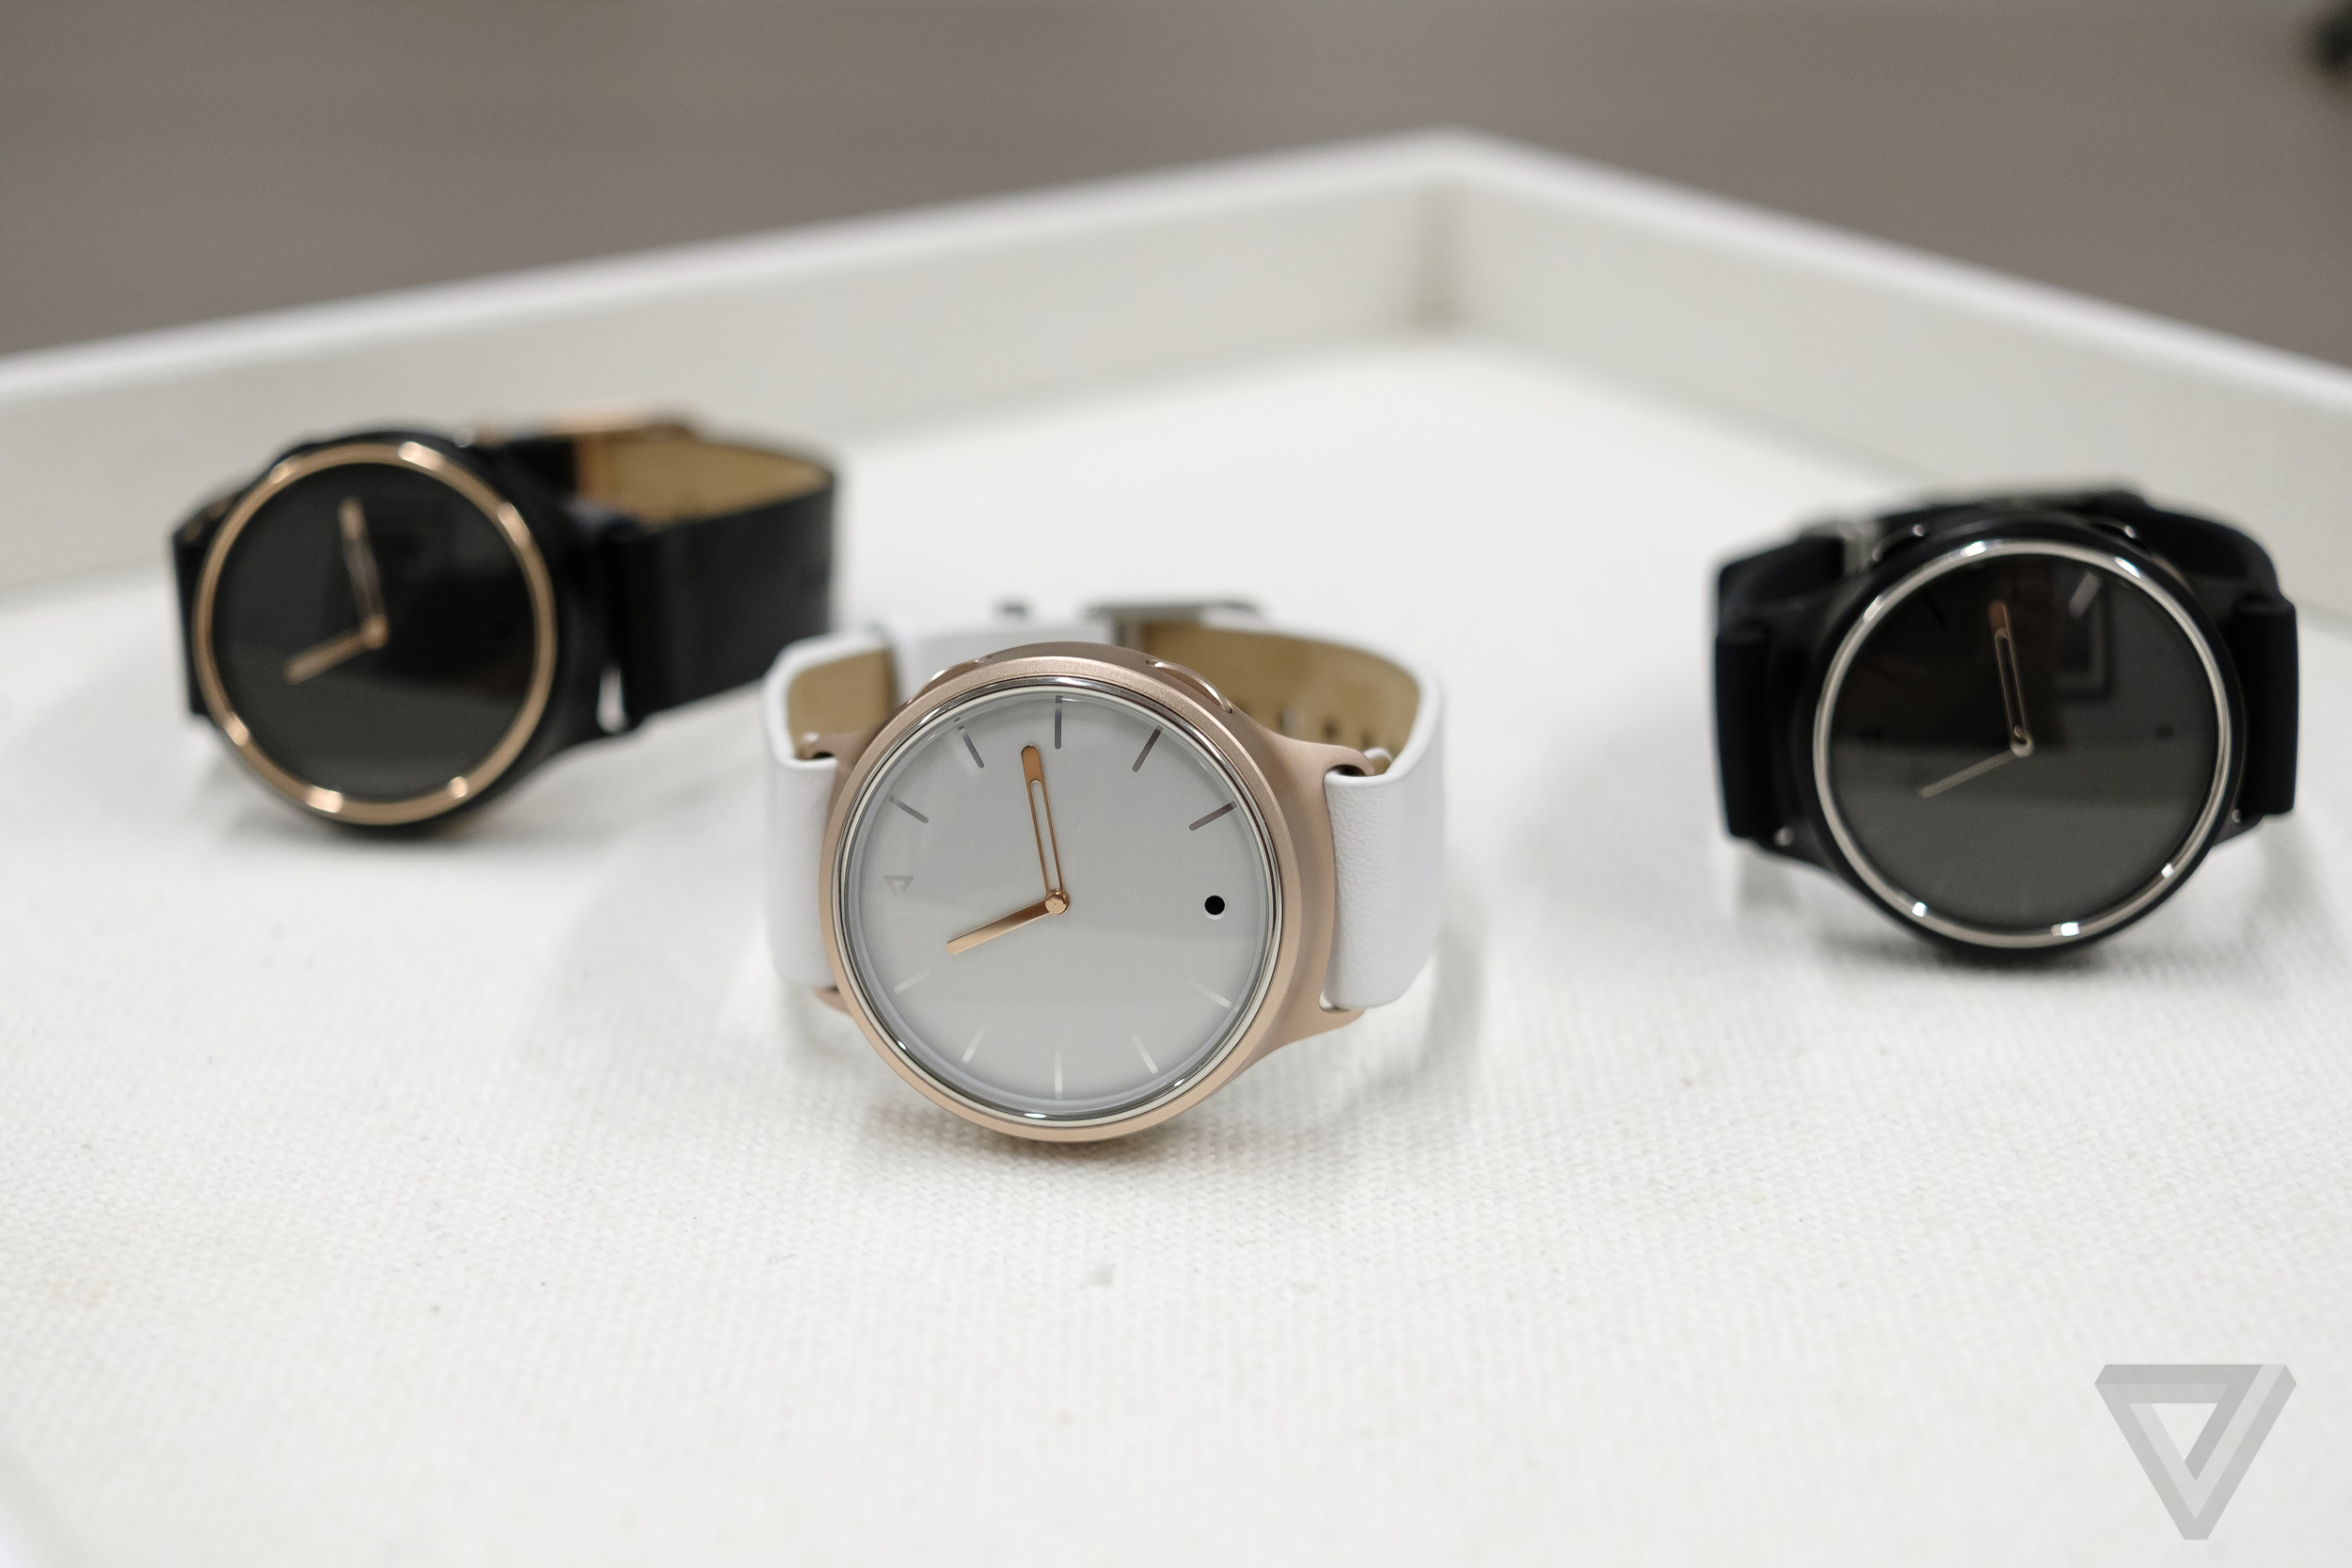 Misfit launches Misfit Phase Hybrid smartwatch: All you need to know